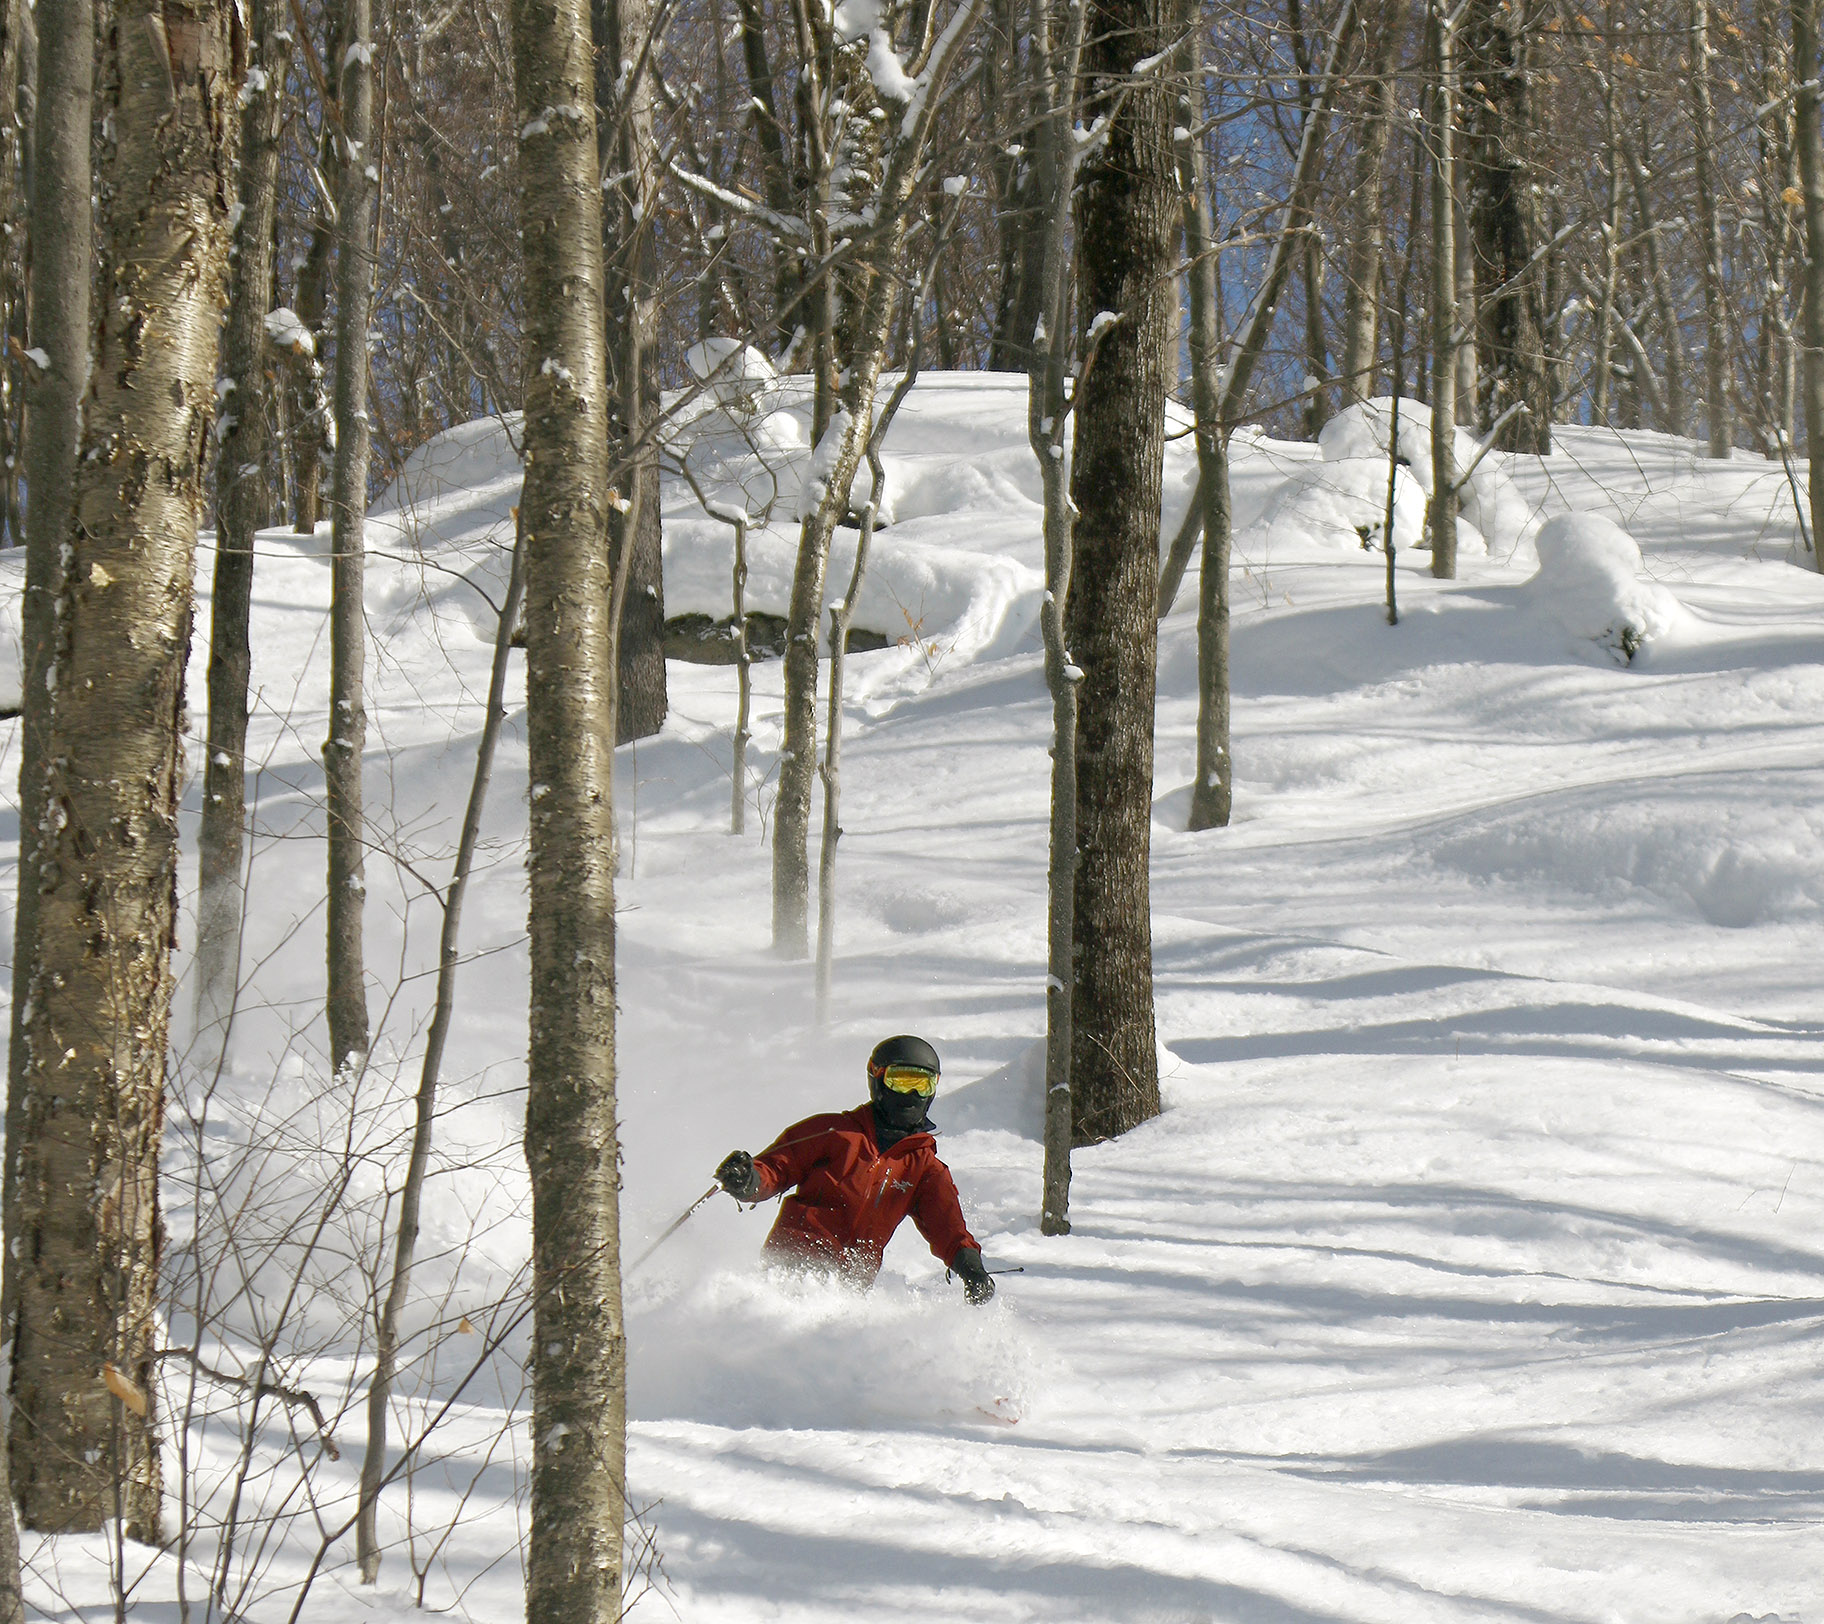 An image of Dylan skiing powder in some open trees at Bolton Valley Ski Resort in Vermont